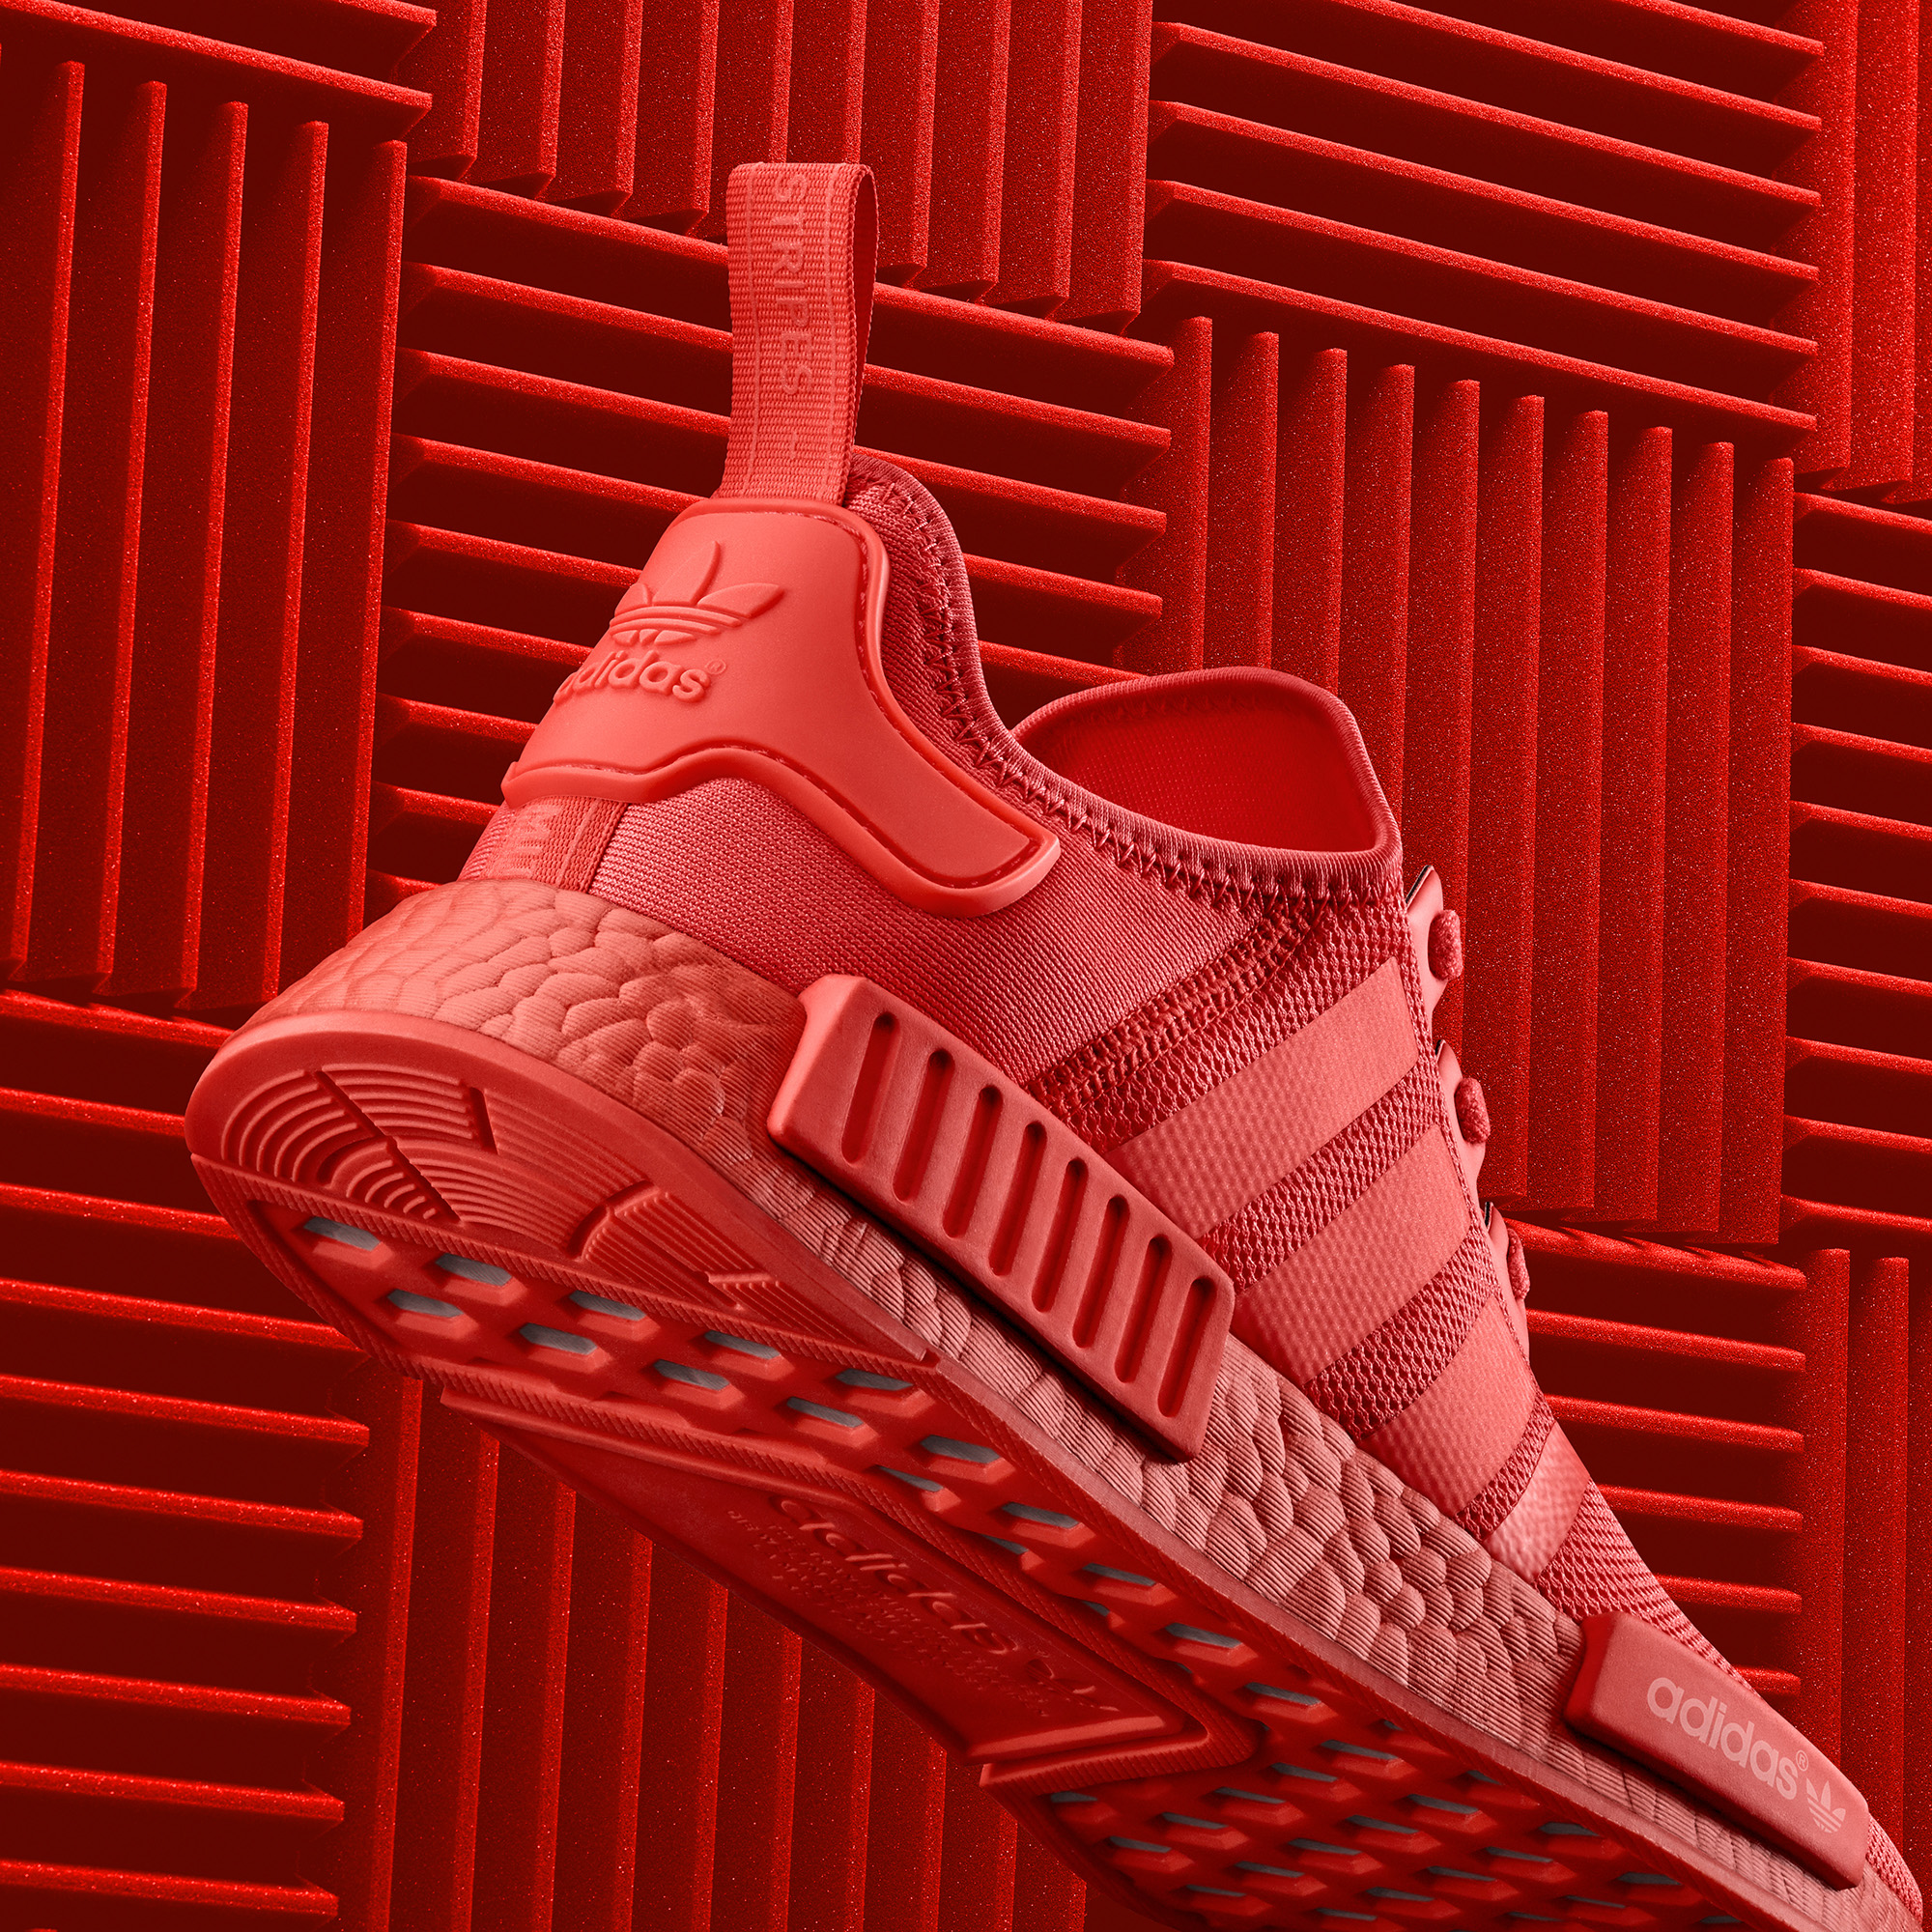 online retailer c98d5 5623c adidas NMD Triple Black And Red Color Boost Pack - Soleracks